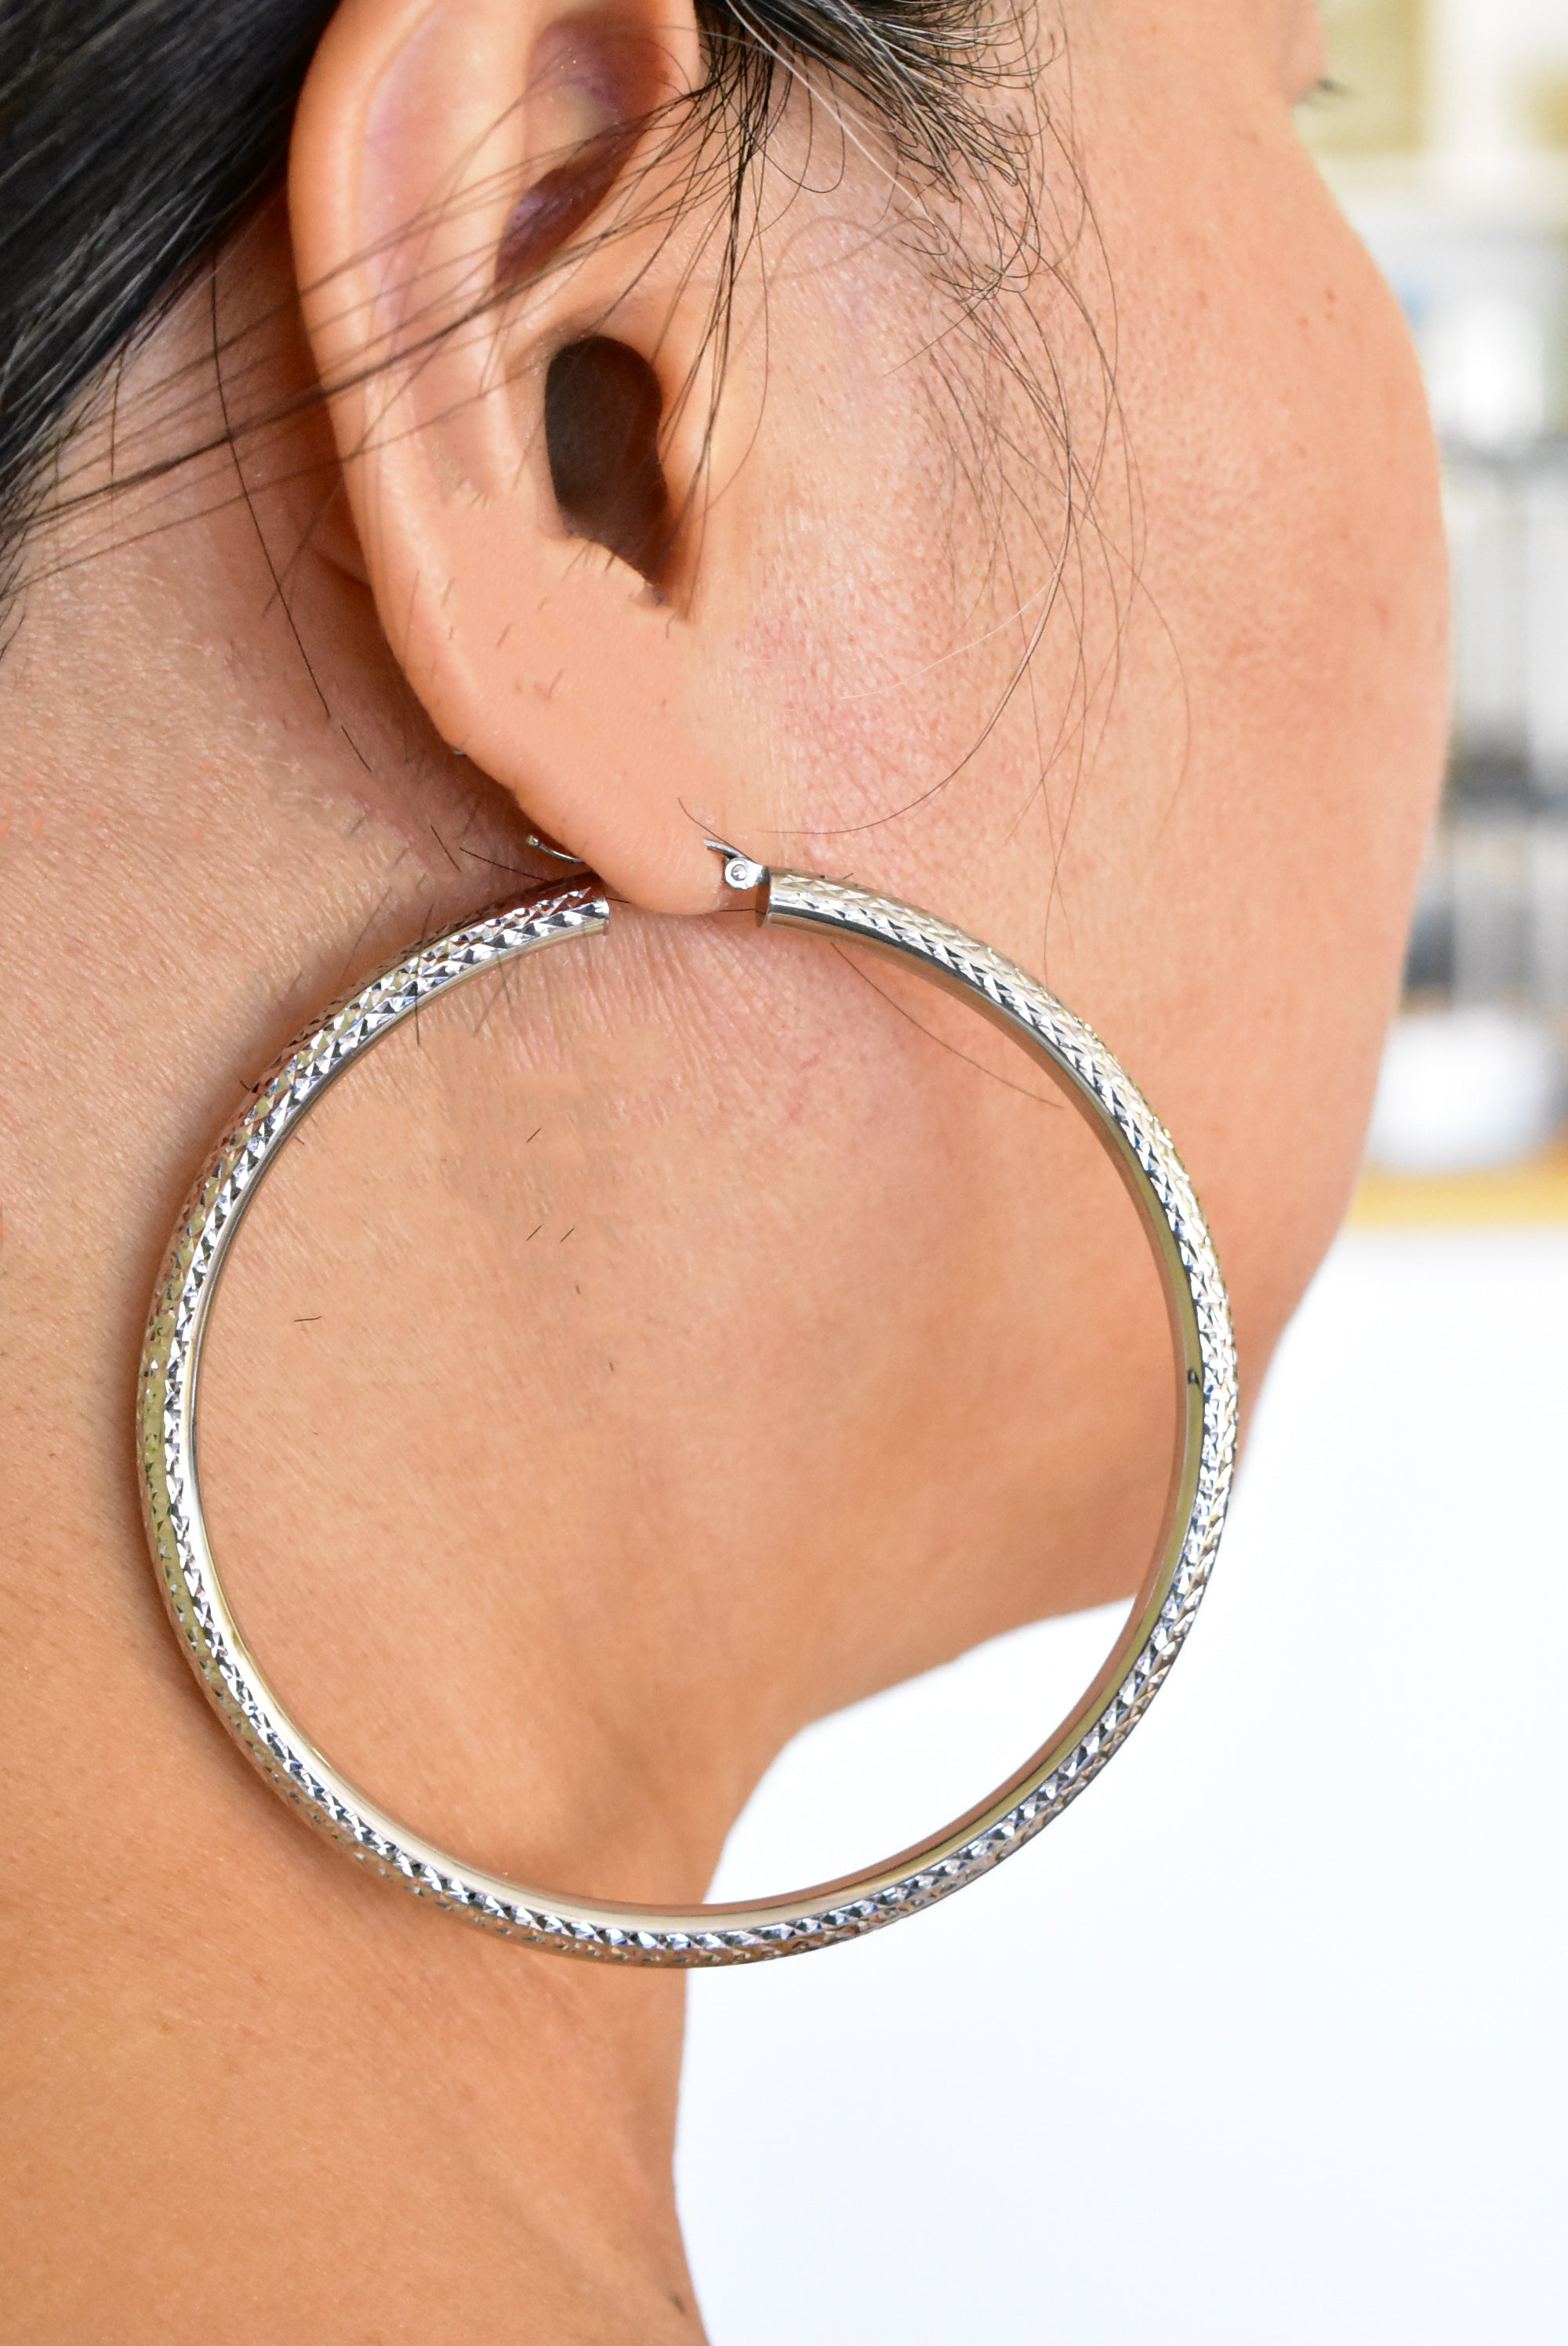 14K White Gold Large Sparkle Diamond Cut Classic Round Hoop Earrings 65mm x 4mm